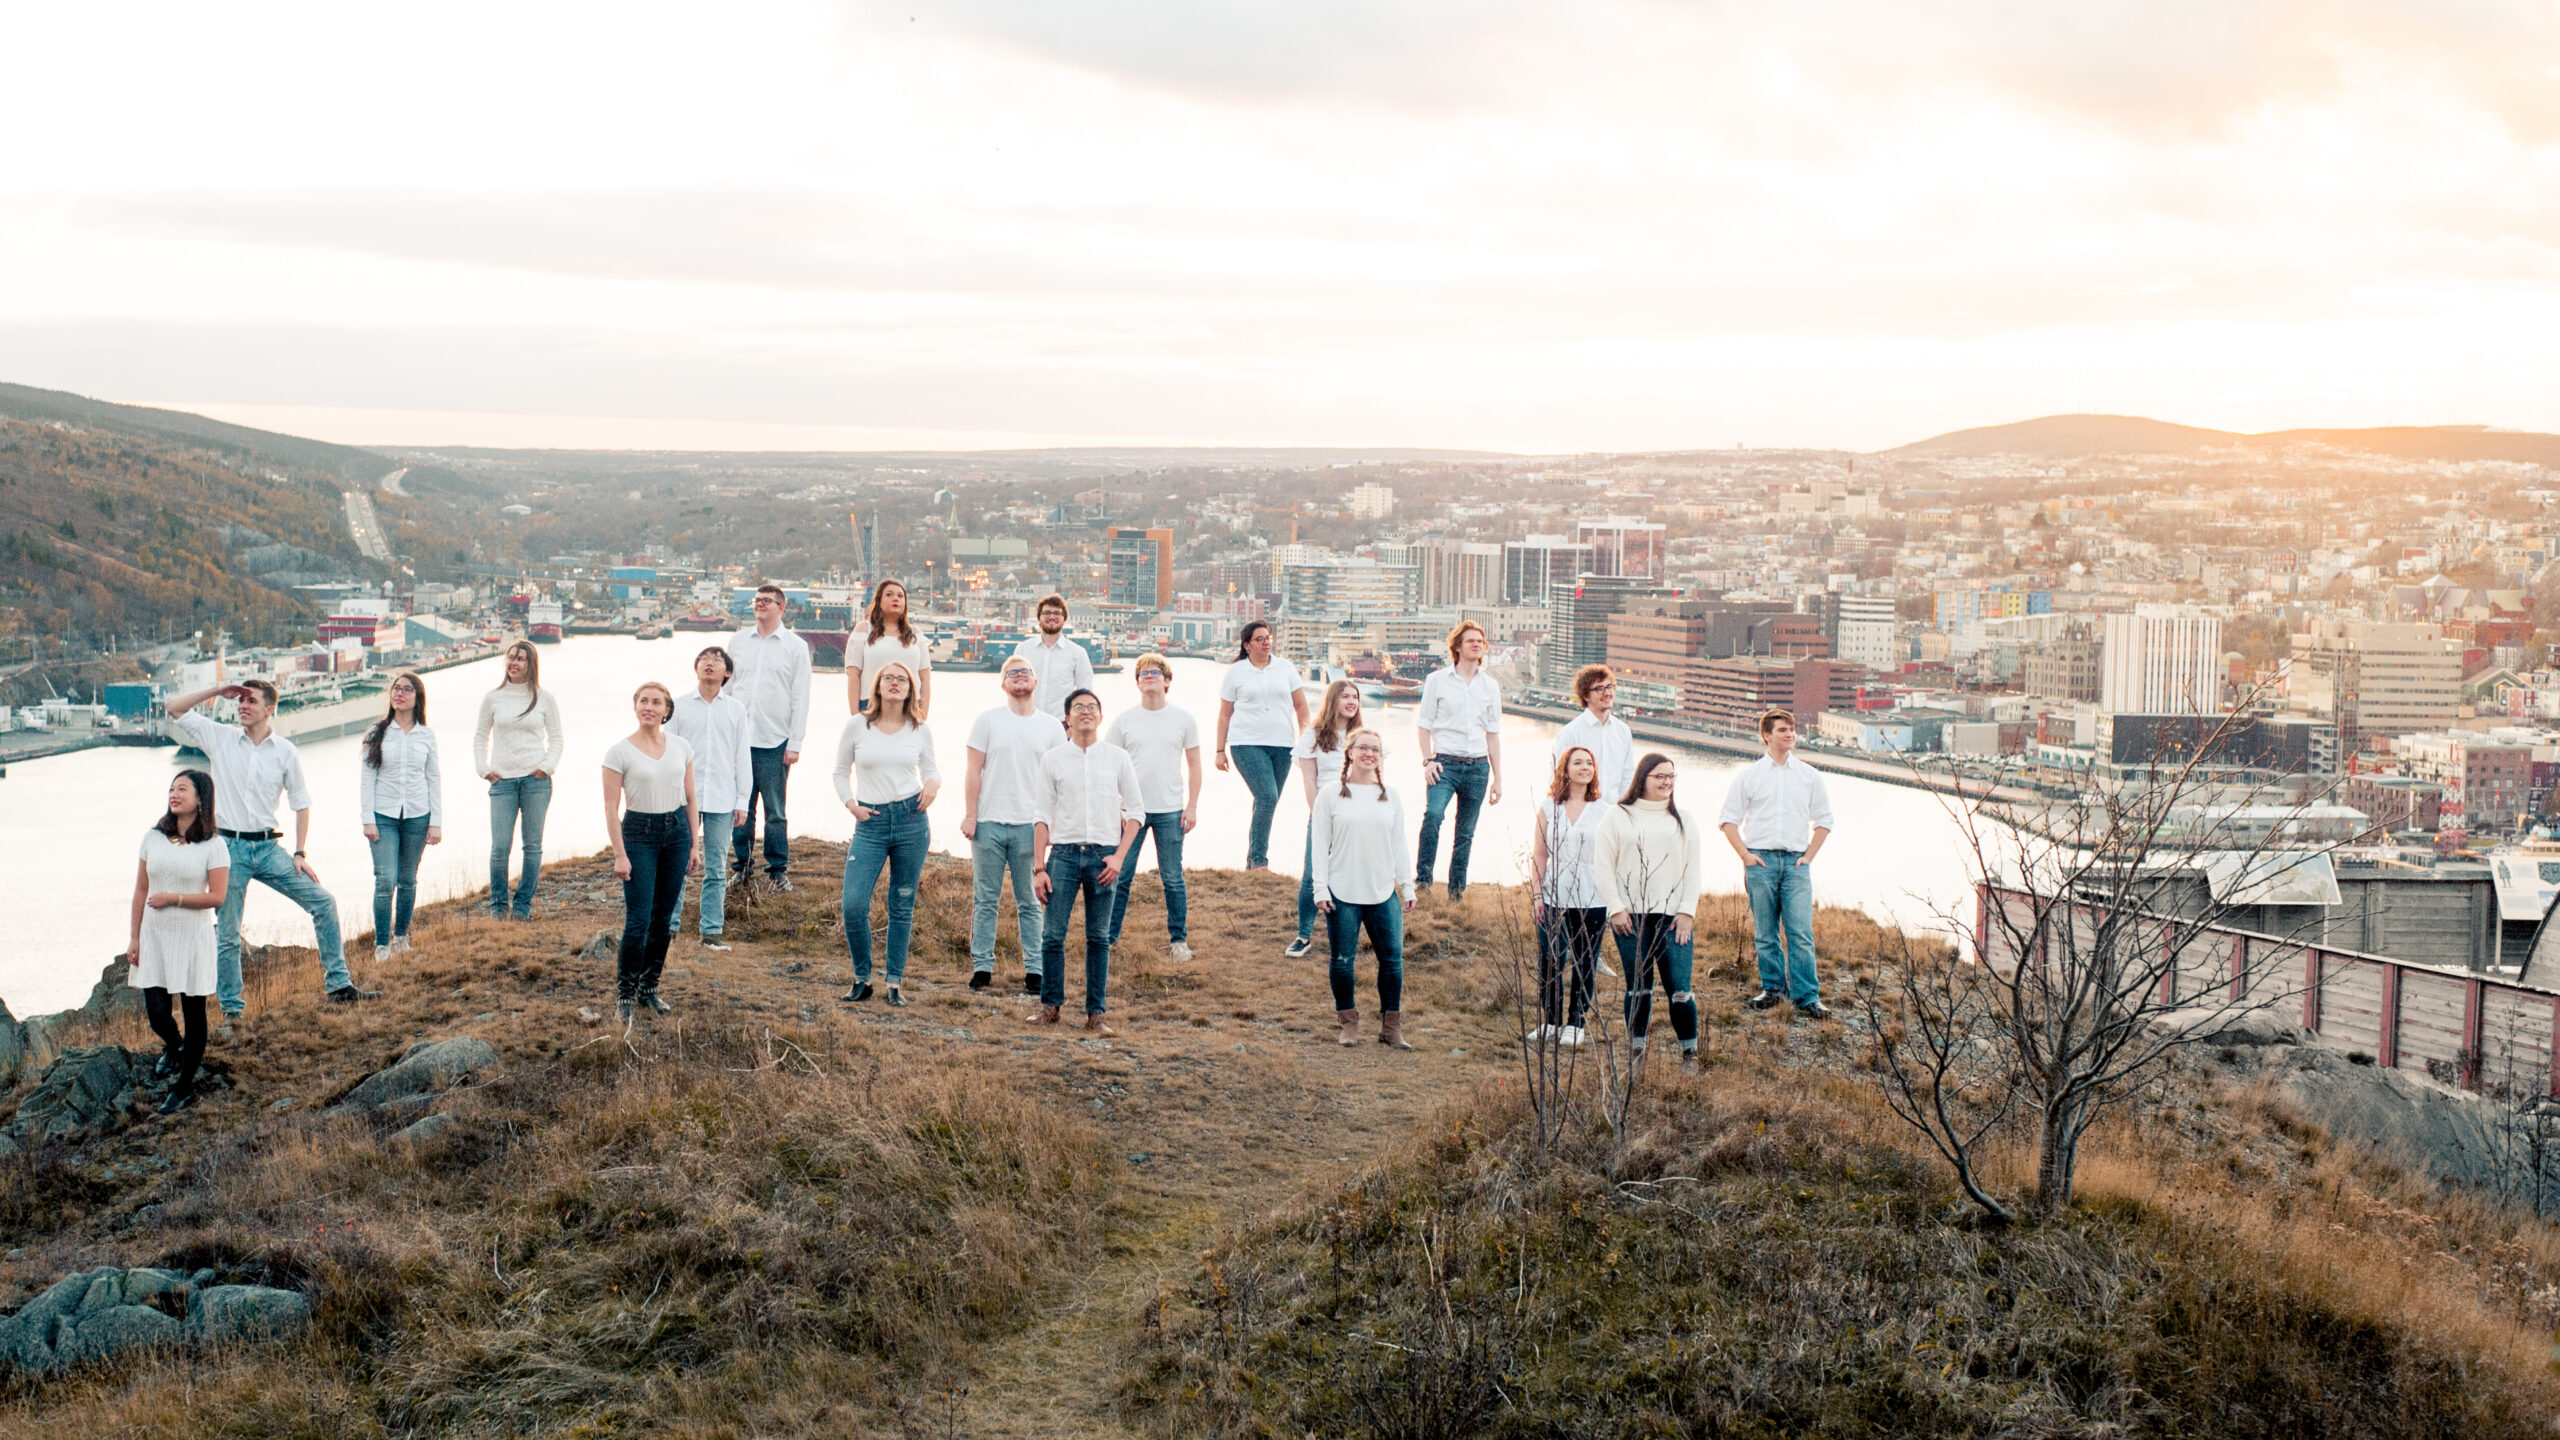 Yu Hang Tan, USA: Suara Chamber Choir, 2018, Canada - A promo photo of the Suara Chamber Choir taken at the Signal Hill, a National Historic Site overlooking the city of St. John's, Newfoundland and Labrador, Canada.